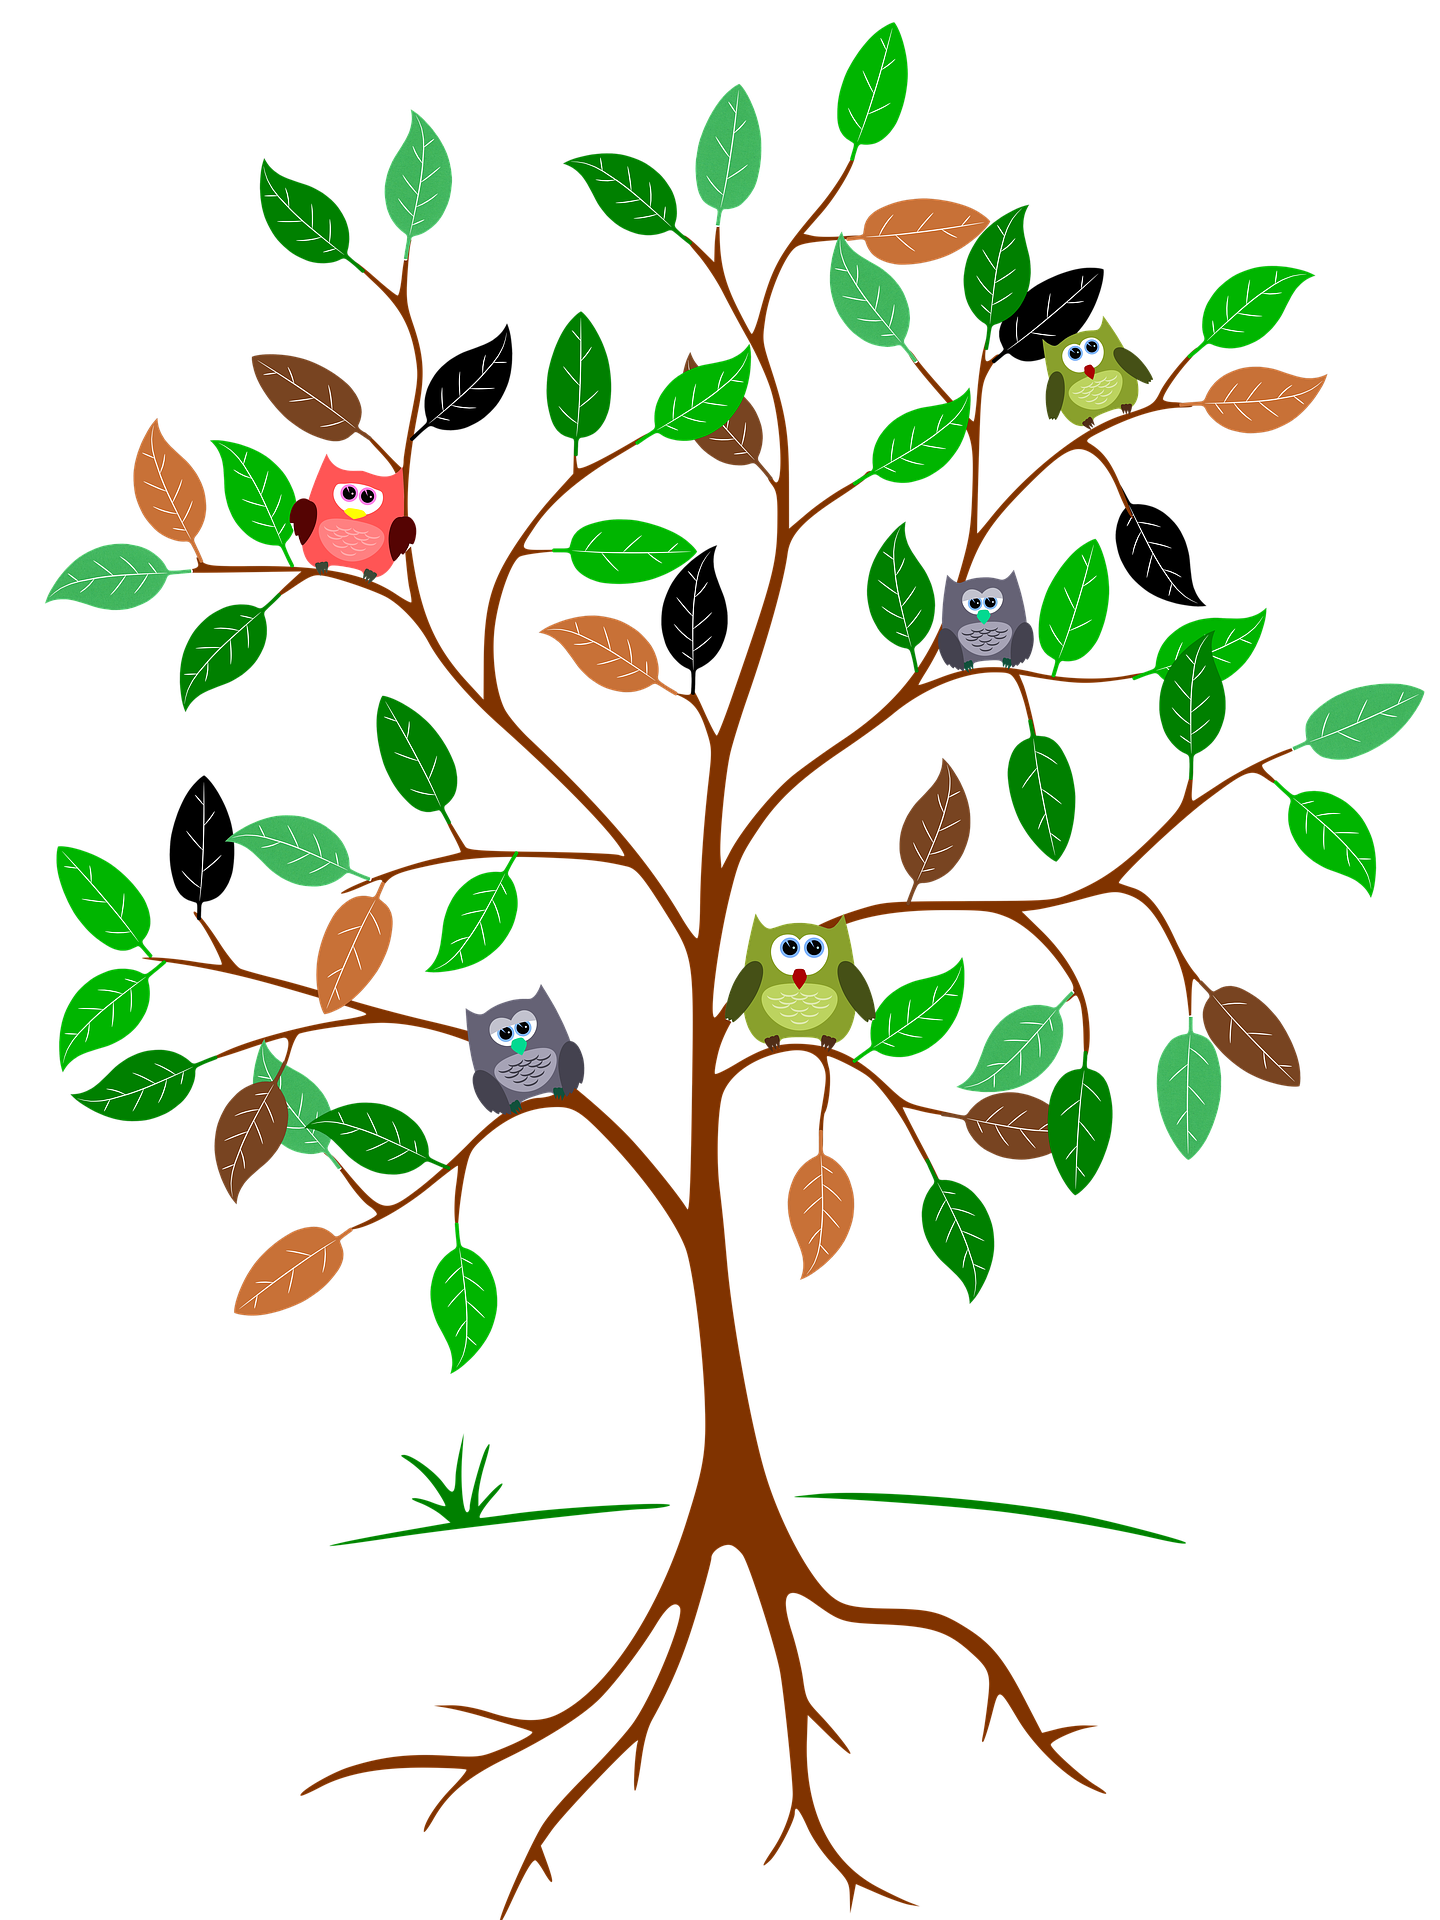 Tree Image with Owls